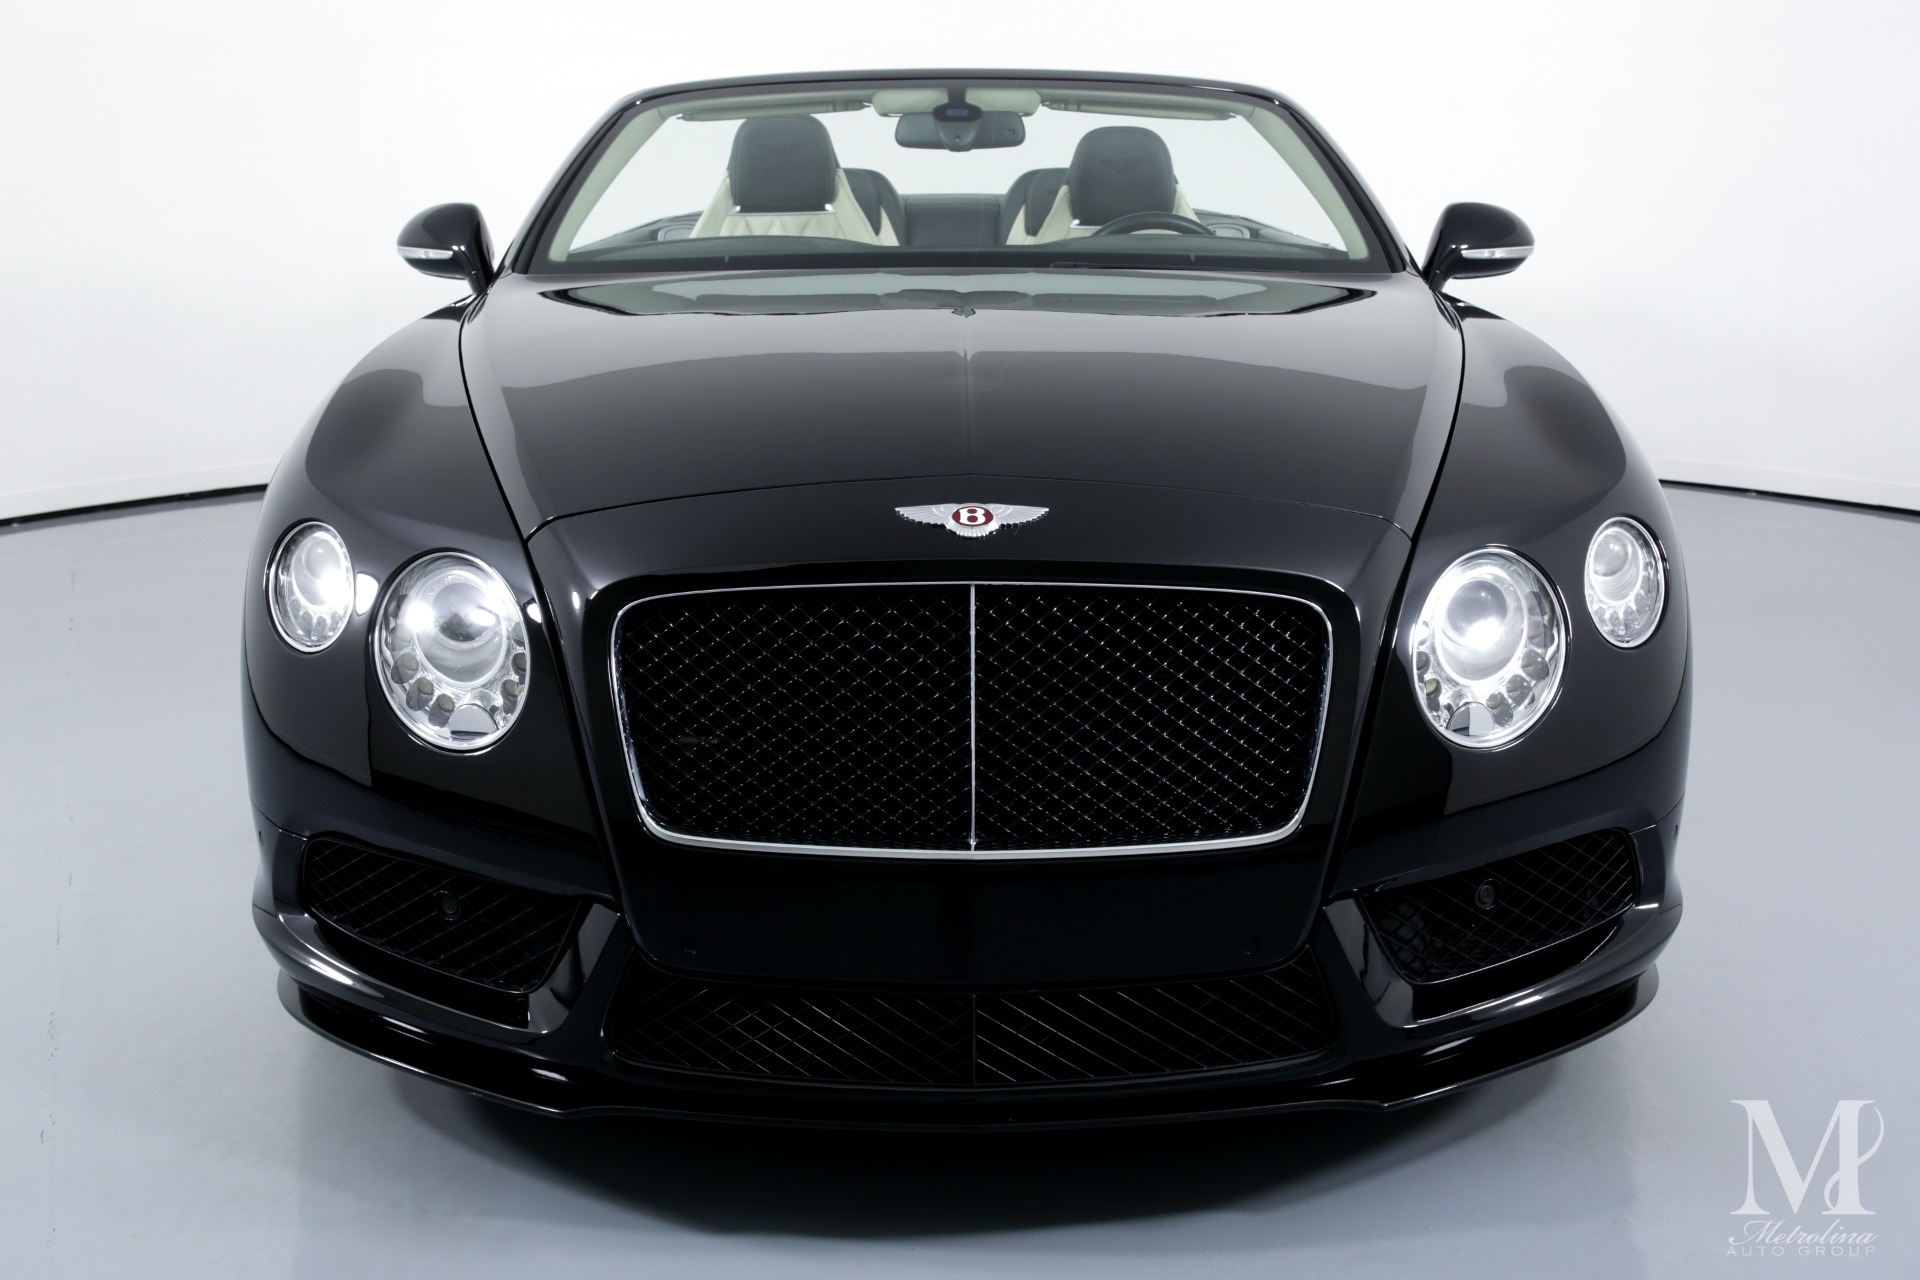 Used 2013 Bentley Continental GT V8 AWD 2dr Convertible for sale Sold at Metrolina Auto Group in Charlotte NC 28217 - 4